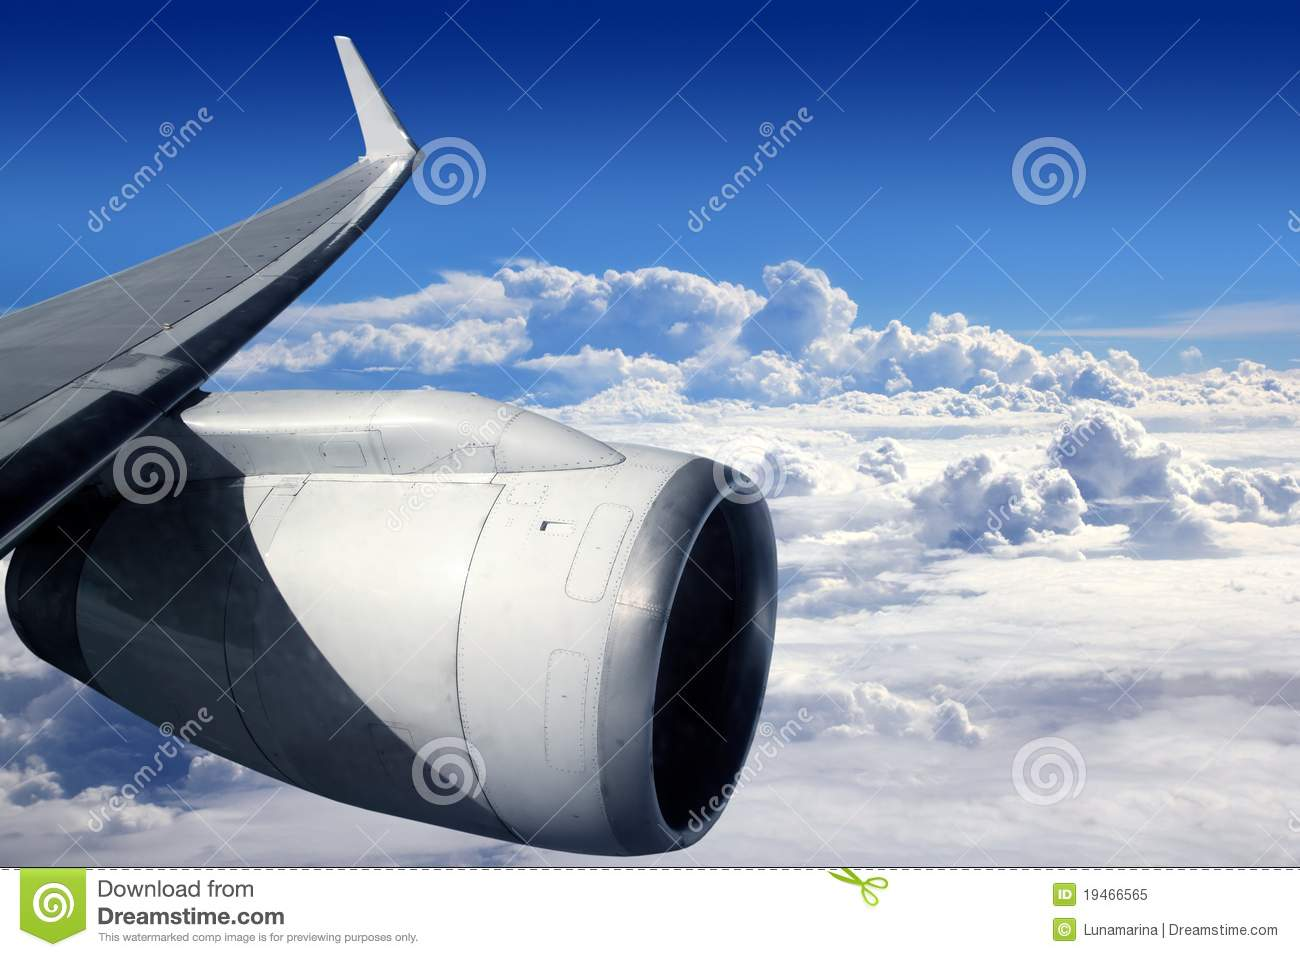 Download Airplane Wing Aircraft Turbine Flying Stock Image - Image of overcast, reactor: 19466565